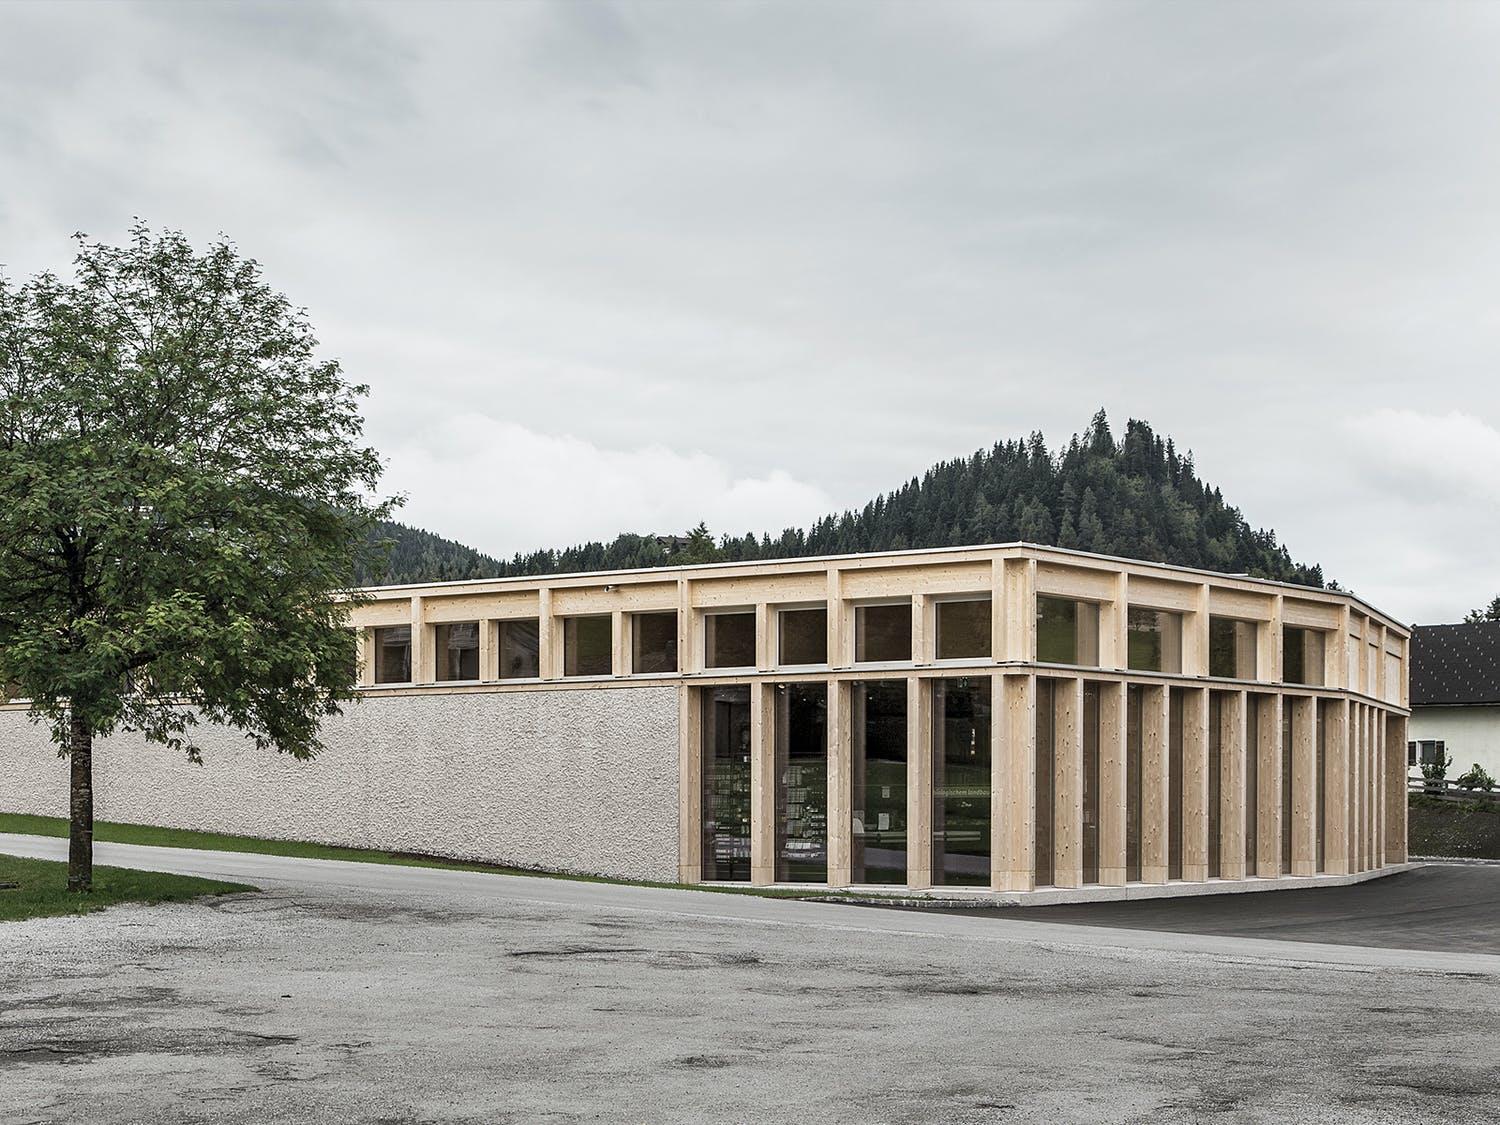 MPREIS St. Martin. Architect: LP architektur ZT GmbH. Location: Altenmarkt,  Austria. Photo courtesy of Best Architects 18.